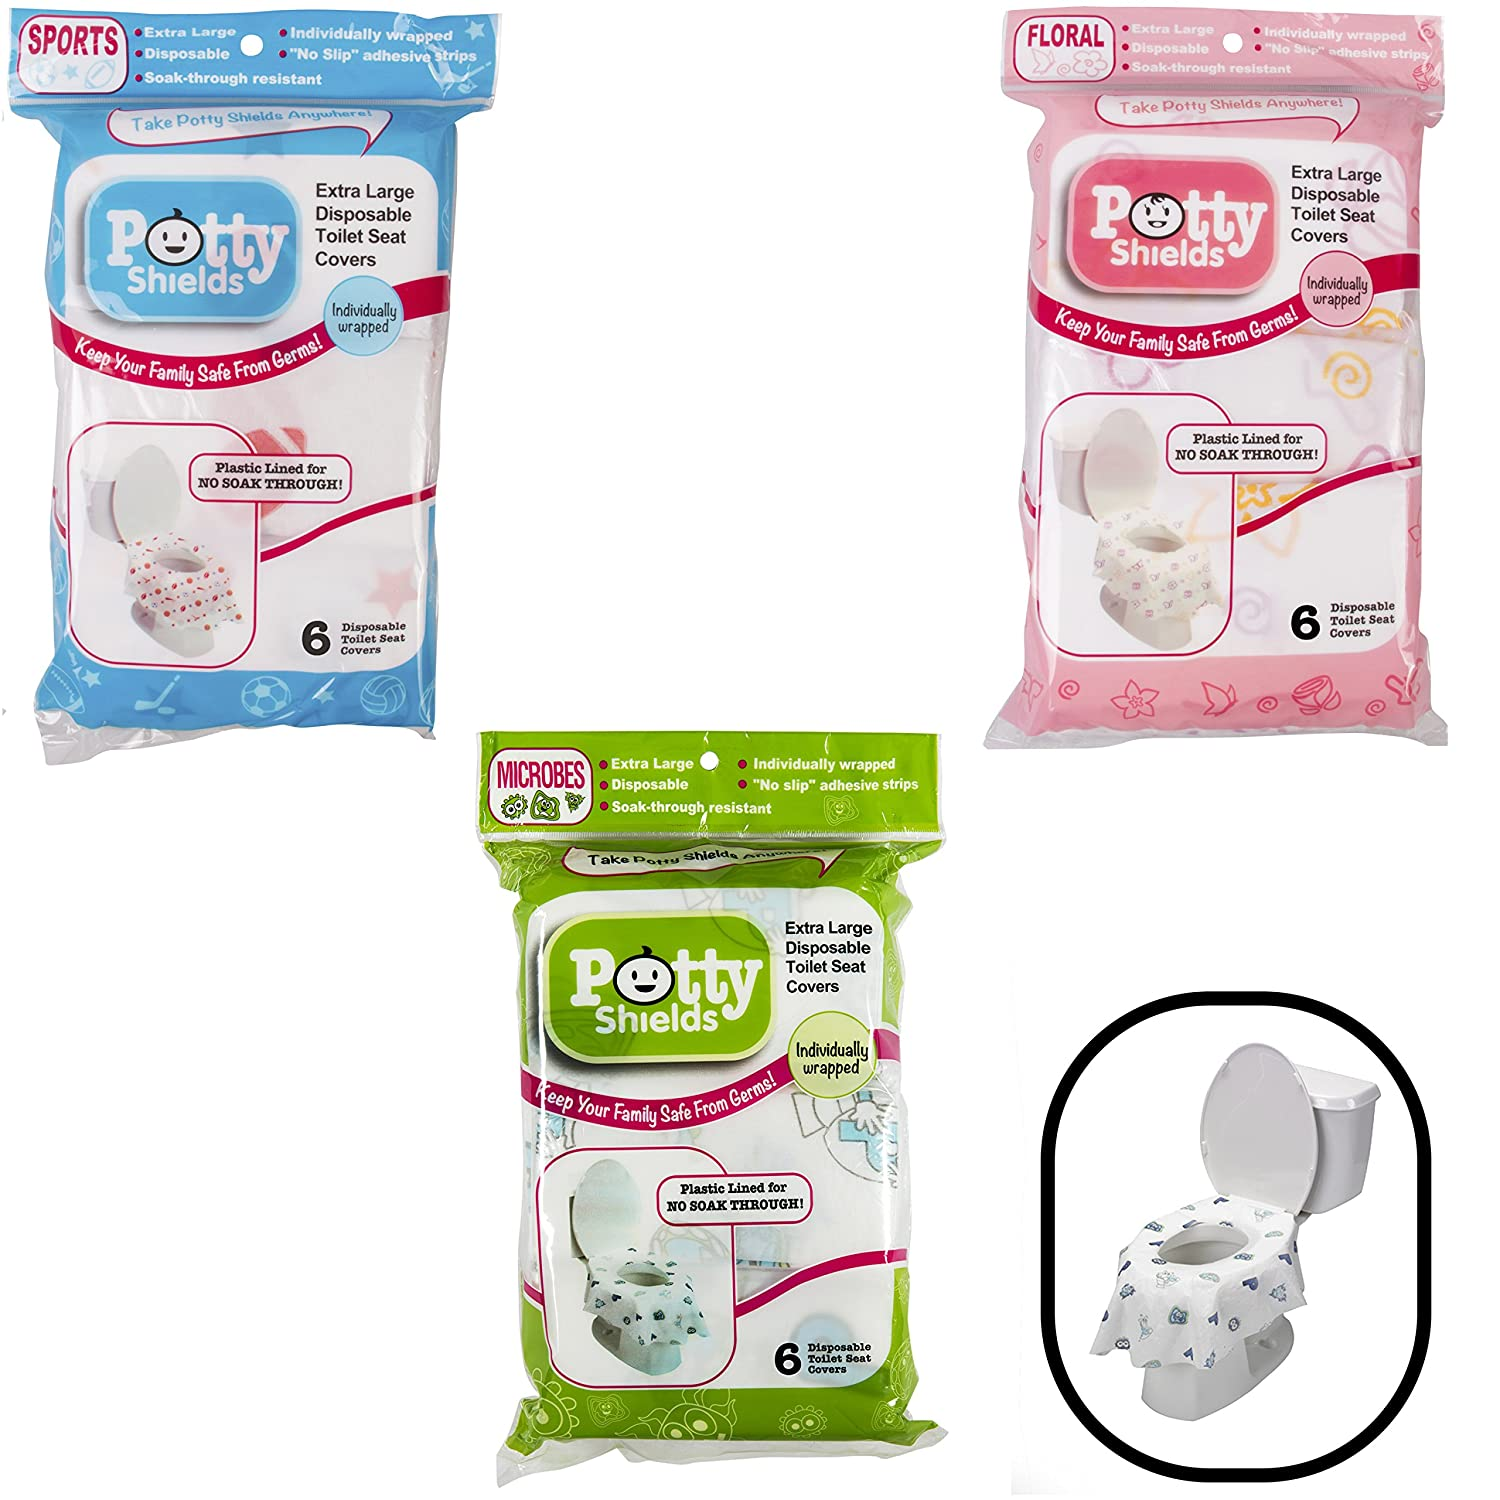 Toilet Seat Covers- Disposable XL Potty Seat Covers, Individually Wrapped by Potty Shields - Extra-Large, No Slip (Original- 6 Pack) PTS_OG6